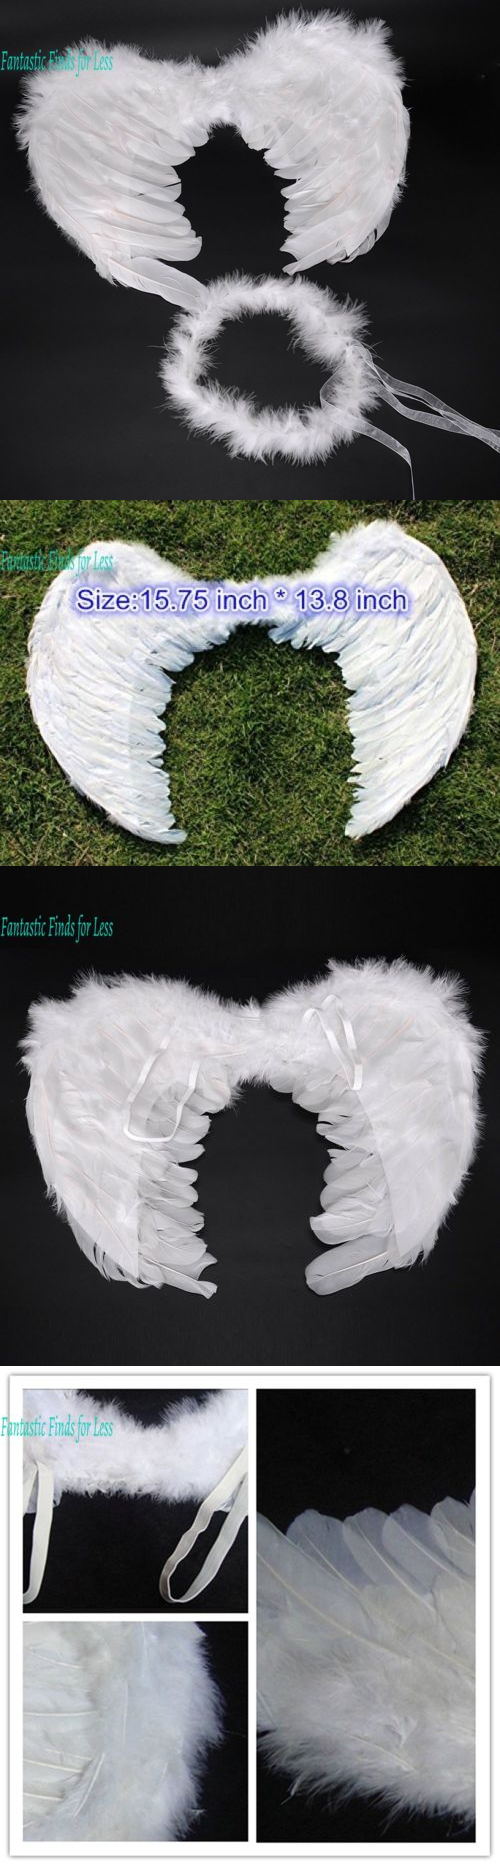 Wings Tails Ears And Noses 155351 Angel For Cosplay Christmas Party Costumes